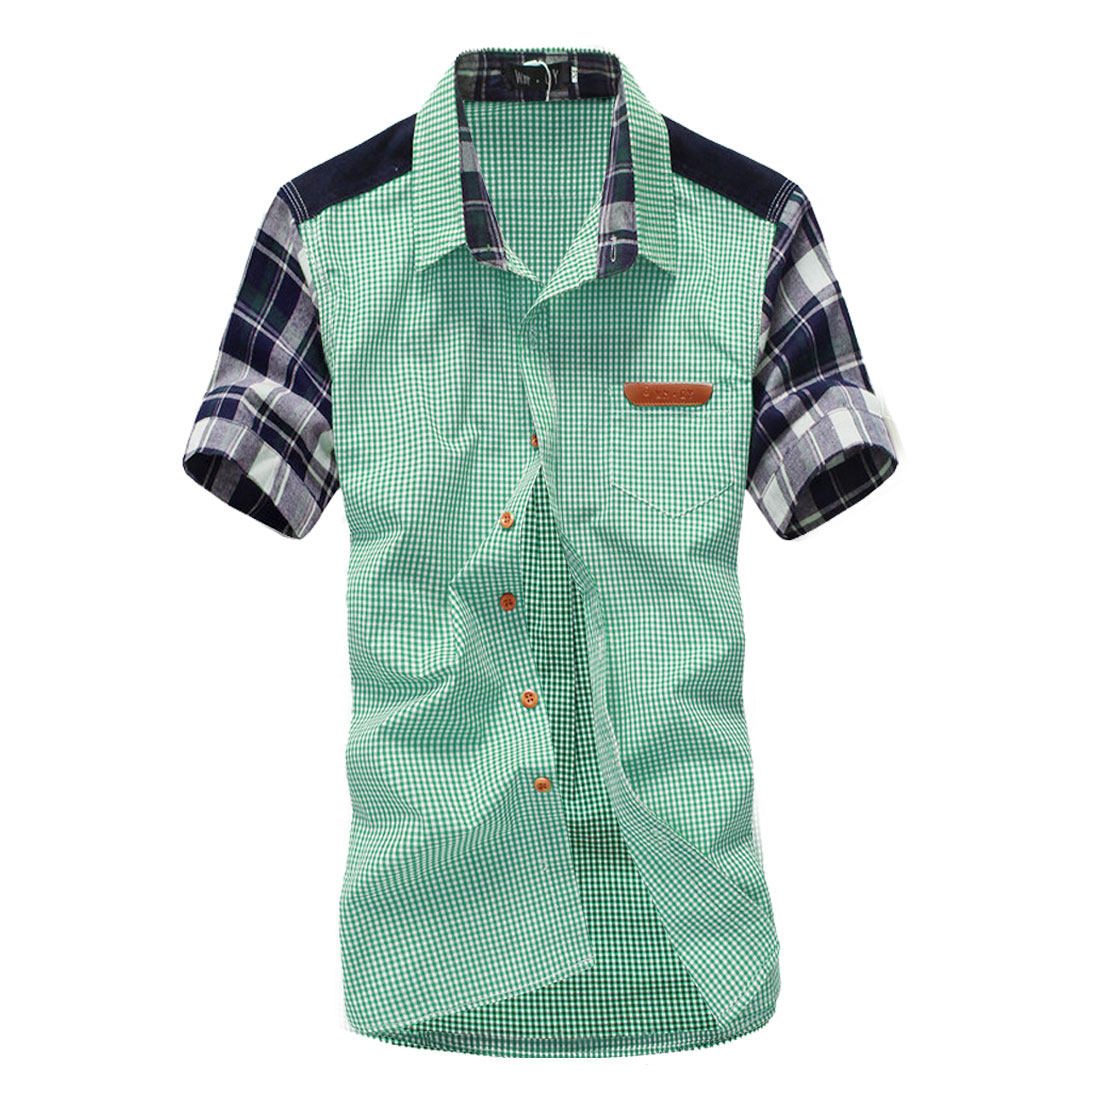 Mens Grass Green Plaids Detail Summer Short Sleeves Shirt M